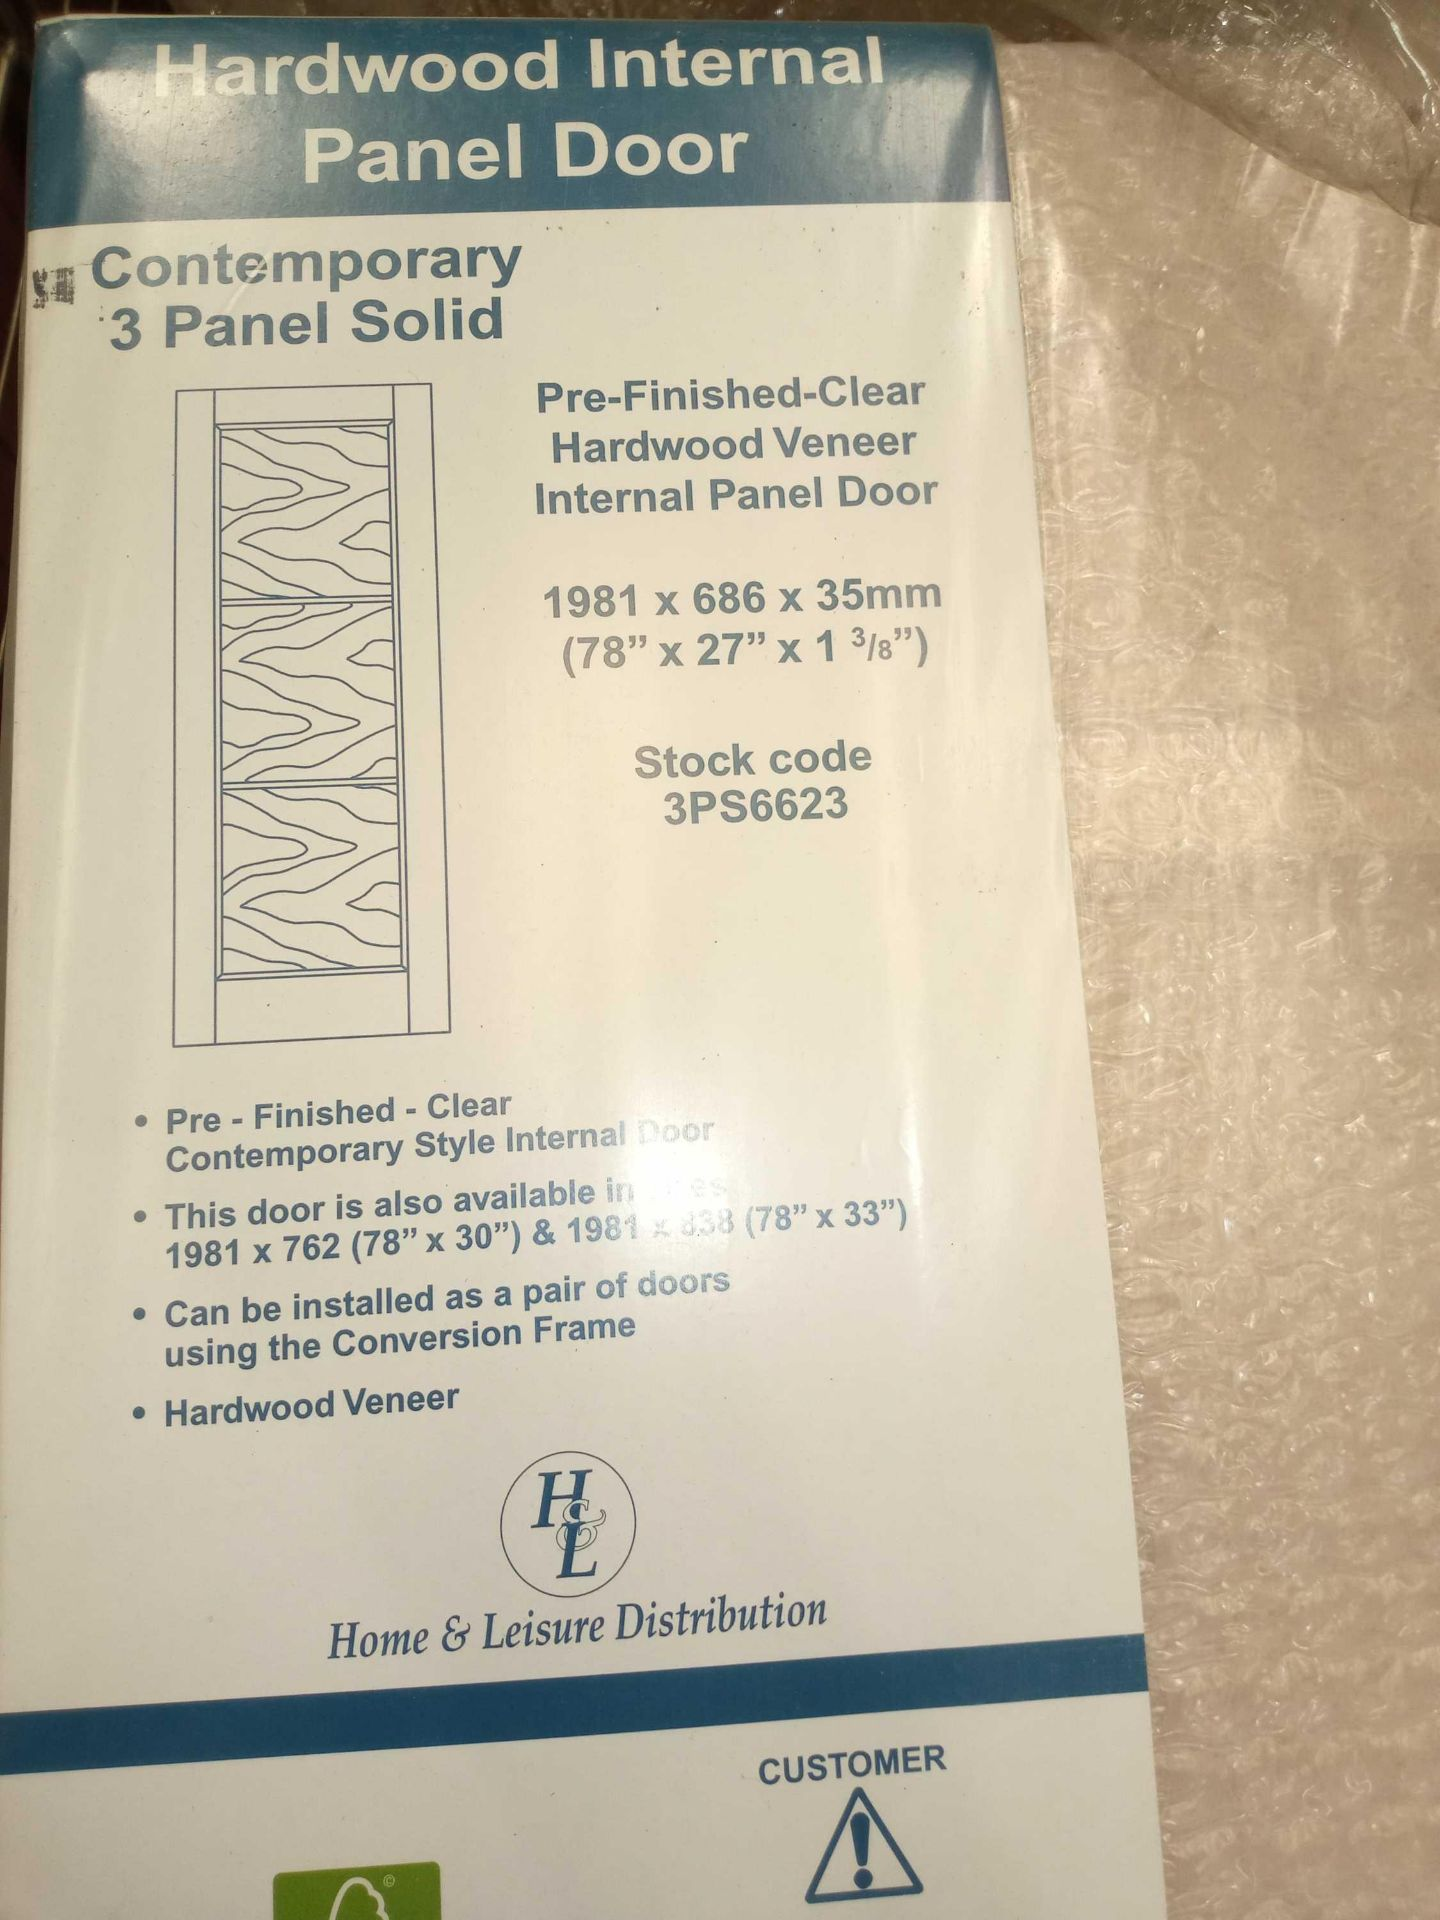 Rrp £1750 Brand New 3 Panel Solid Doors - Image 3 of 3